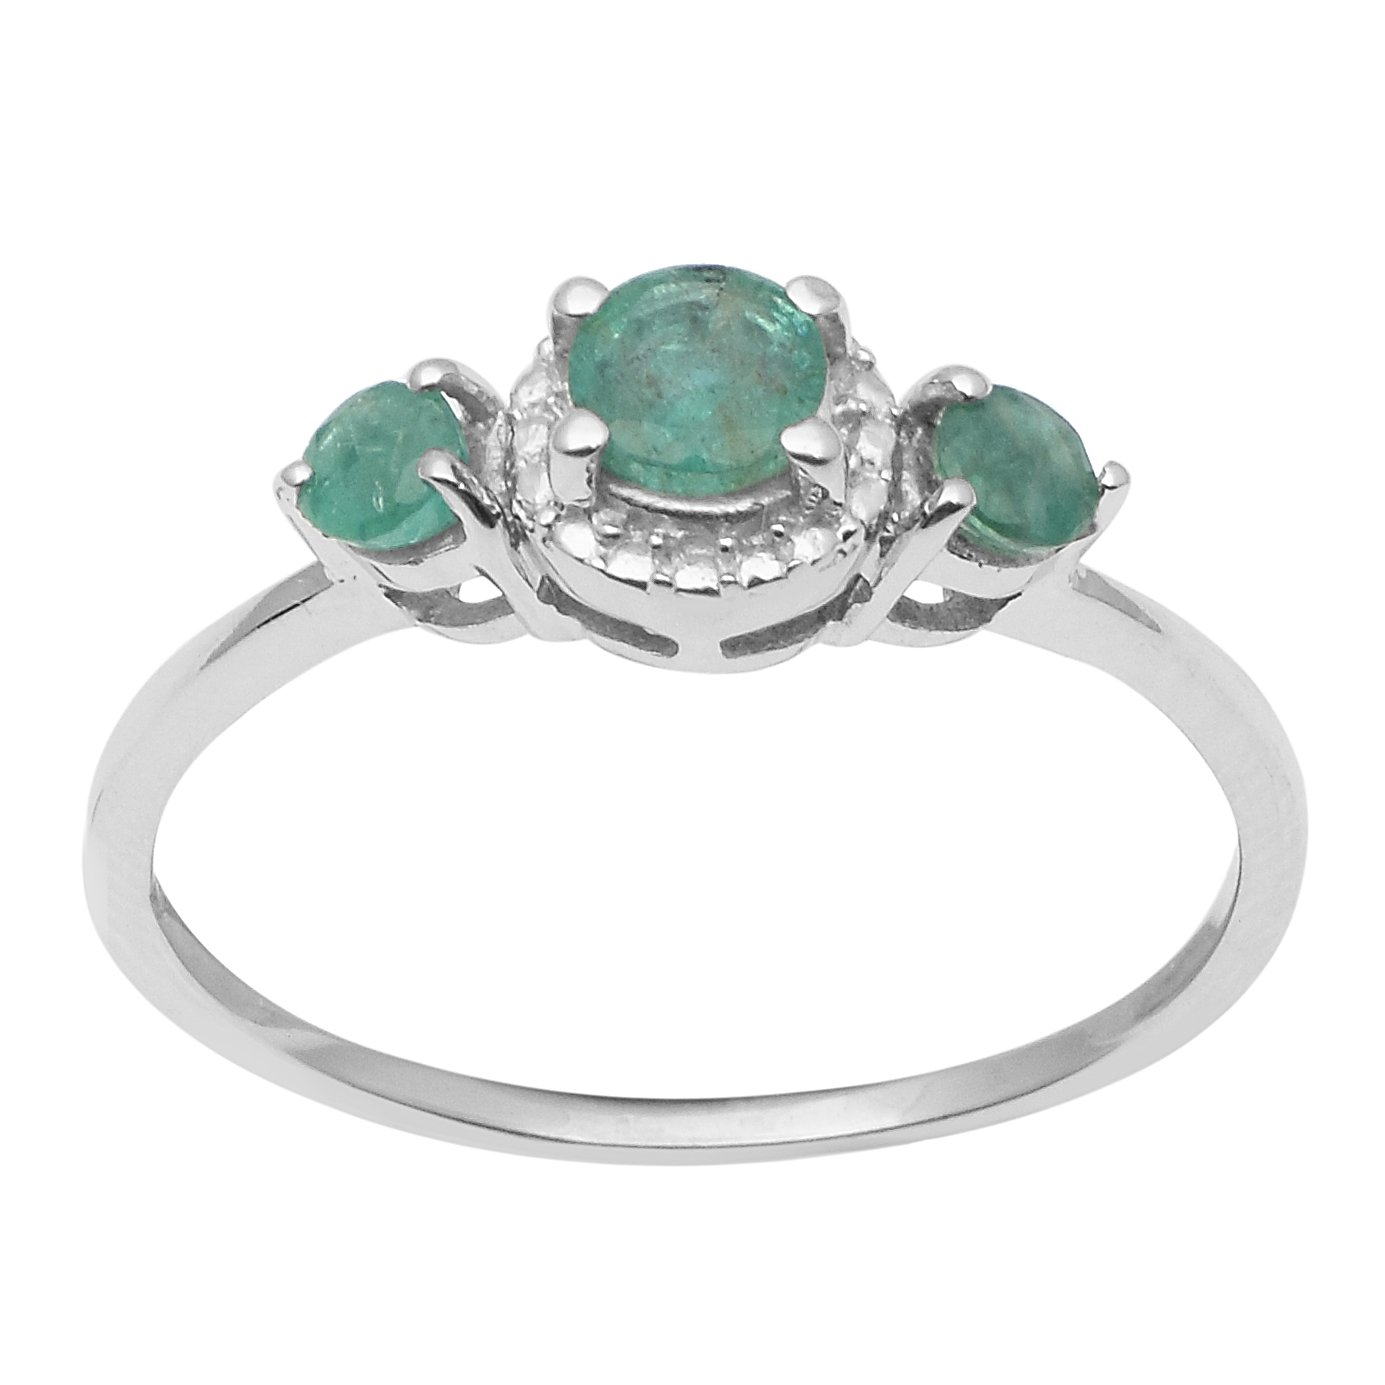 Natural Round Cut Emerald Gemstone 925 Sterling Silver Solitaire Wedding Ring